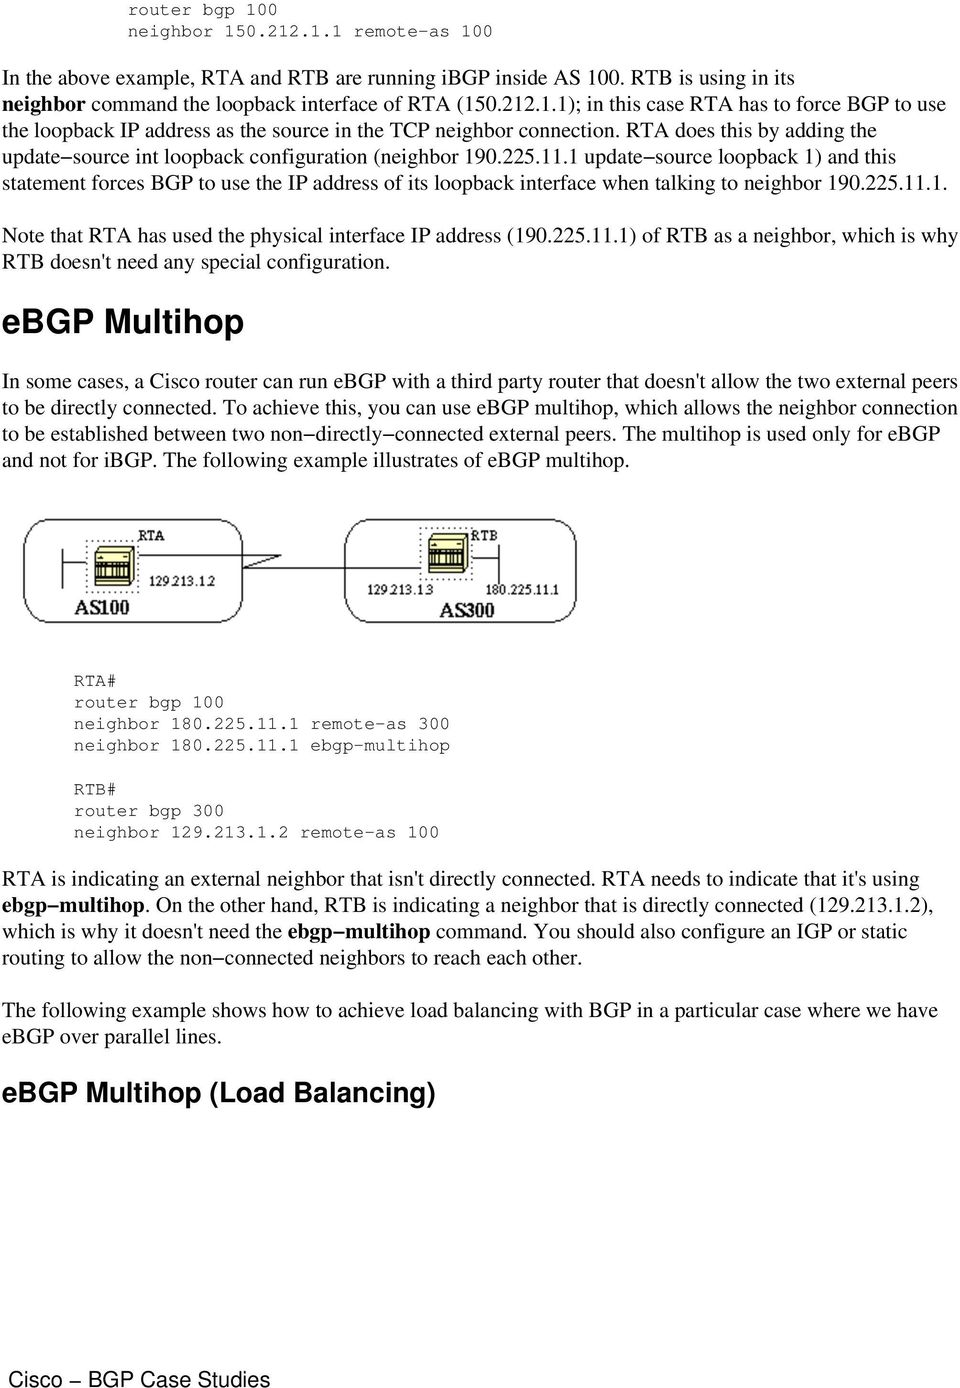 1 update source loopback 1) and this statement forces BGP to use the IP address of its loopback interface when talking to neighbor 190.225.11.1. Note that RTA has used the physical interface IP address (190.